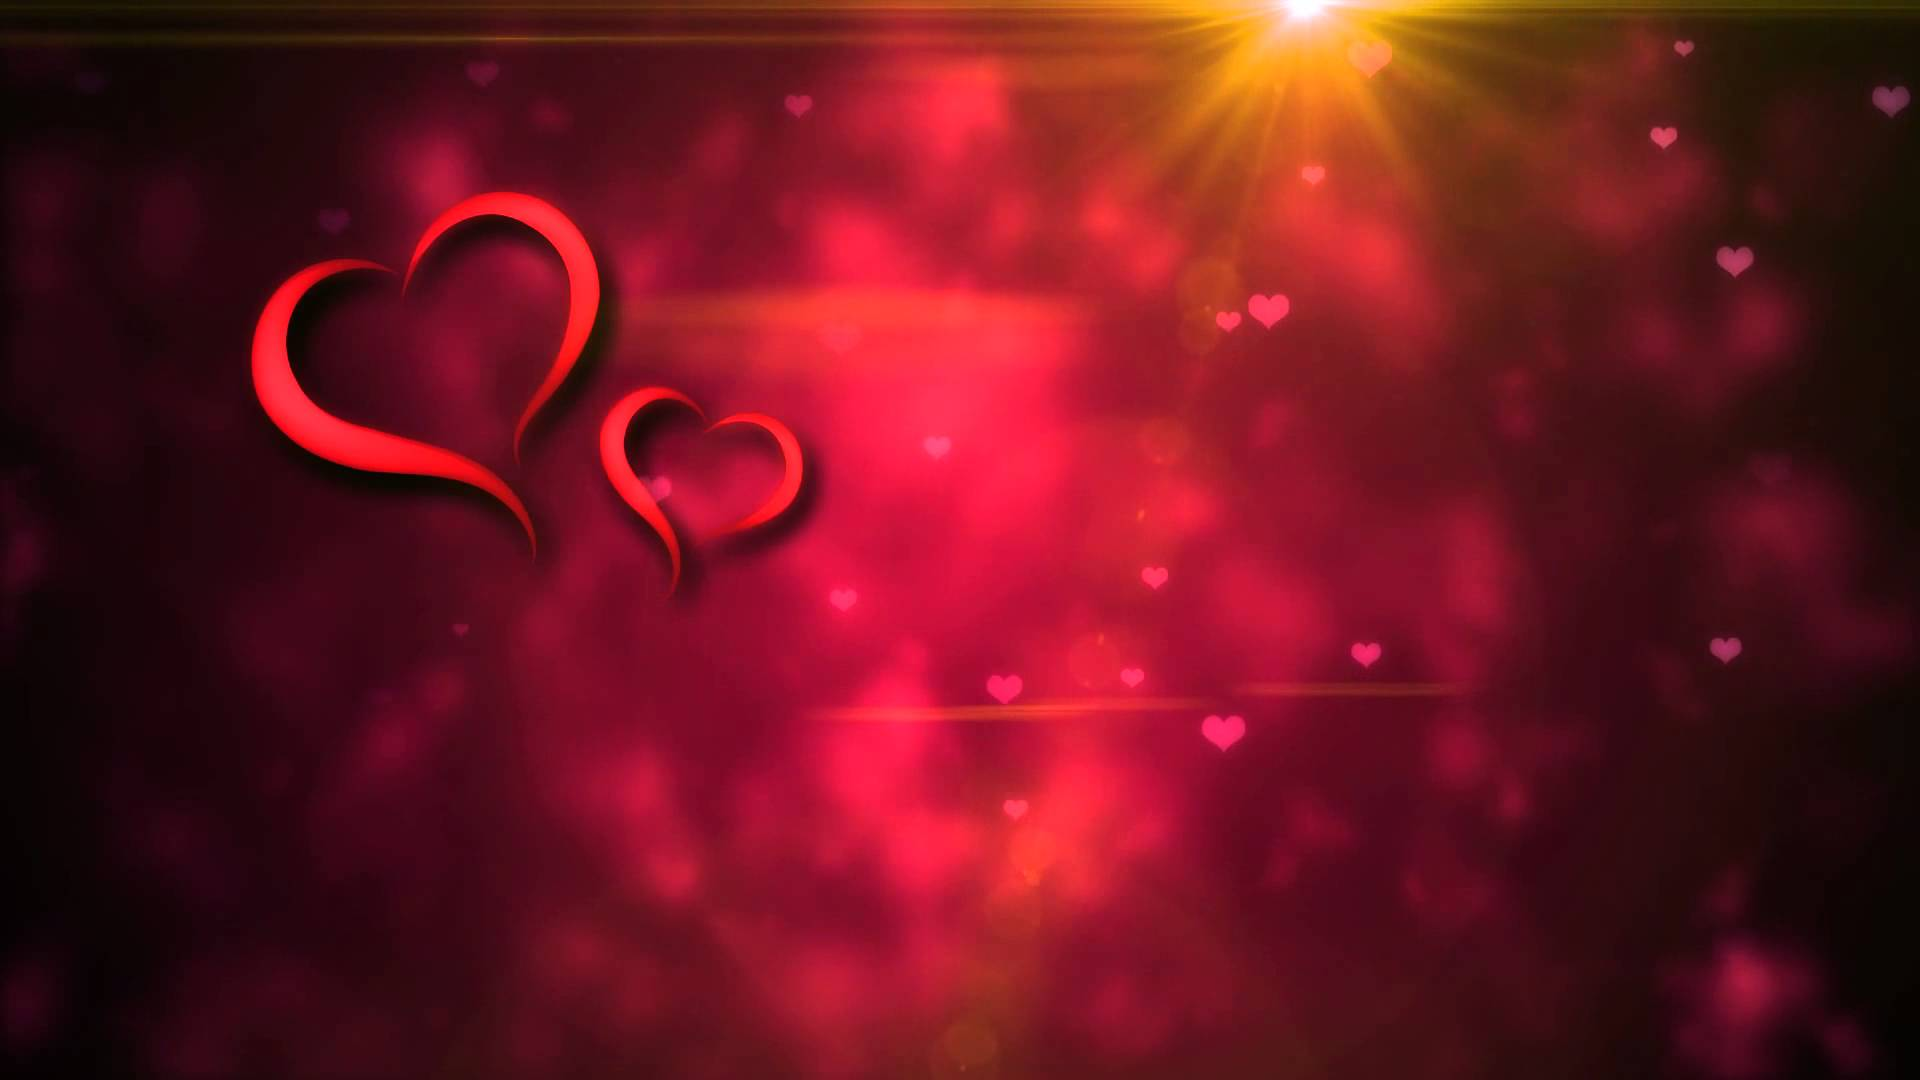 Top Love Wallpaper Full Hd : Hd Wedding Backgrounds - WallpaperSafari